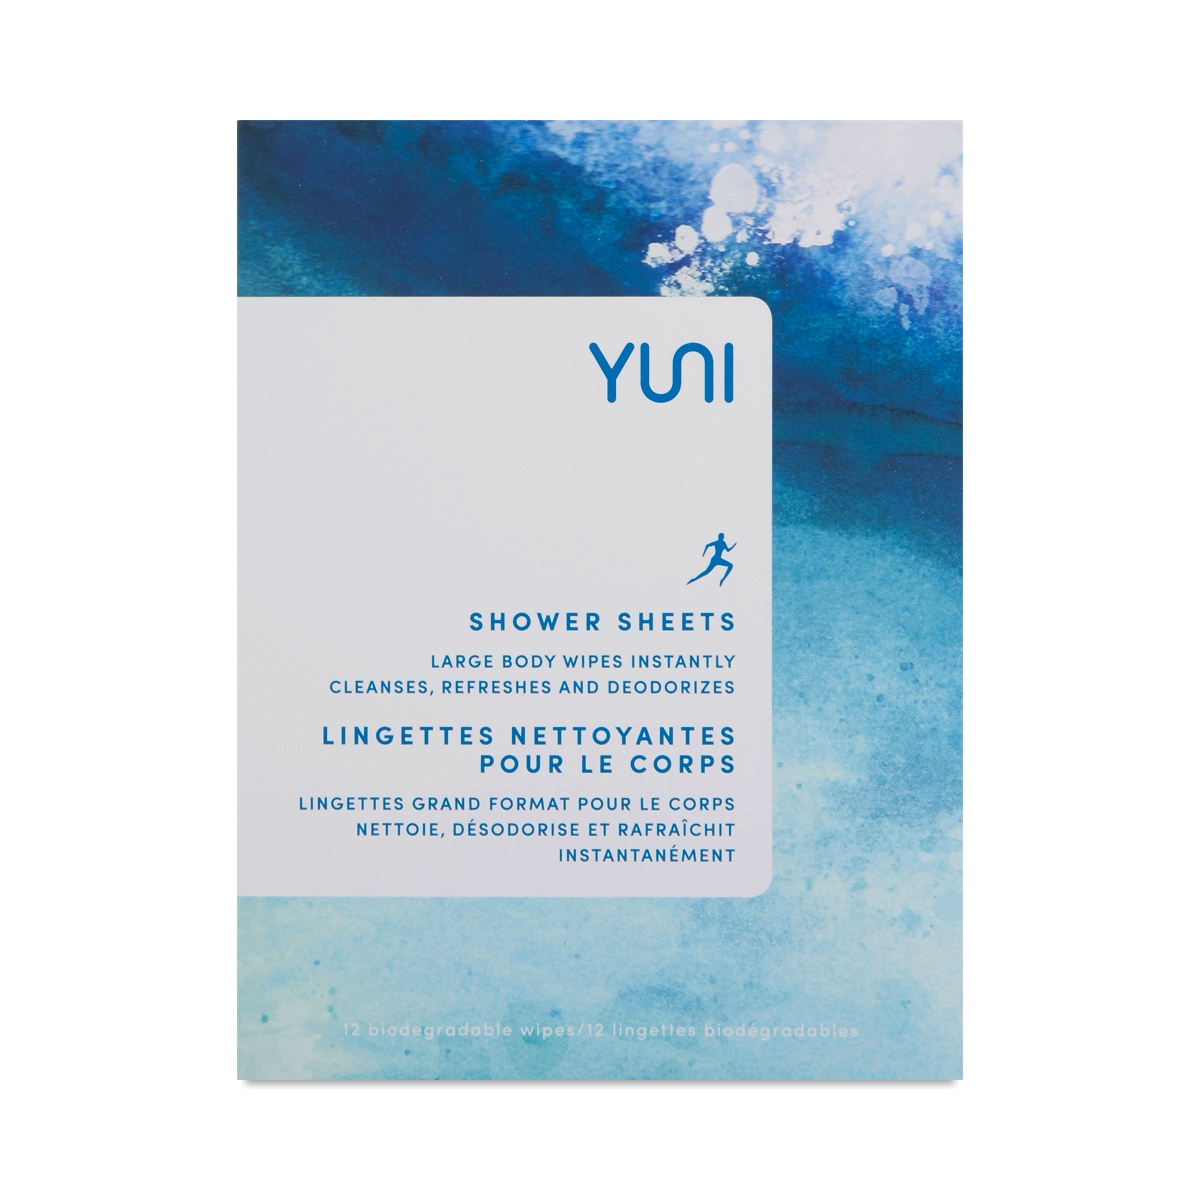 YUNI Beauty Shower Sheets - Thrive Market